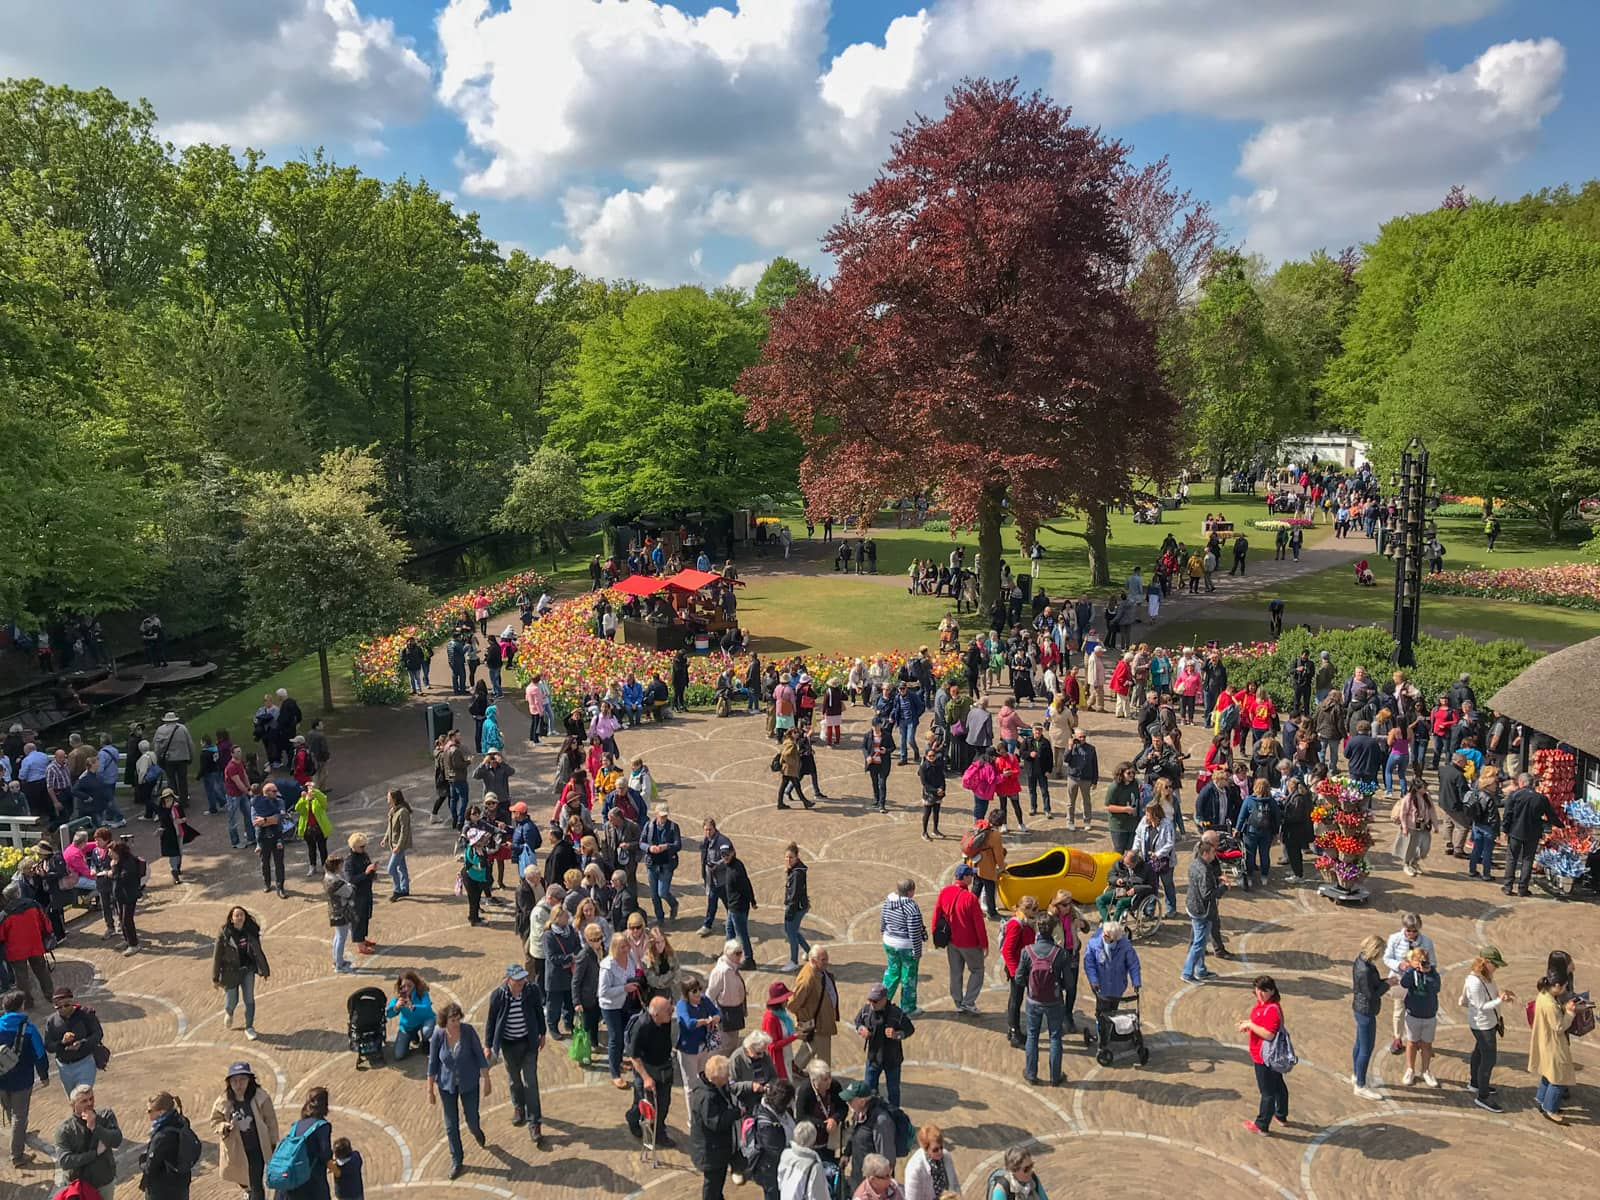 A high vantage view of a crowd of people scattered in the open walkable area of a park. In the distance some arrangements of tulips can be seen, and the trees in the park are very green apart from one dark red one in the centre. It is a relatively sunny day